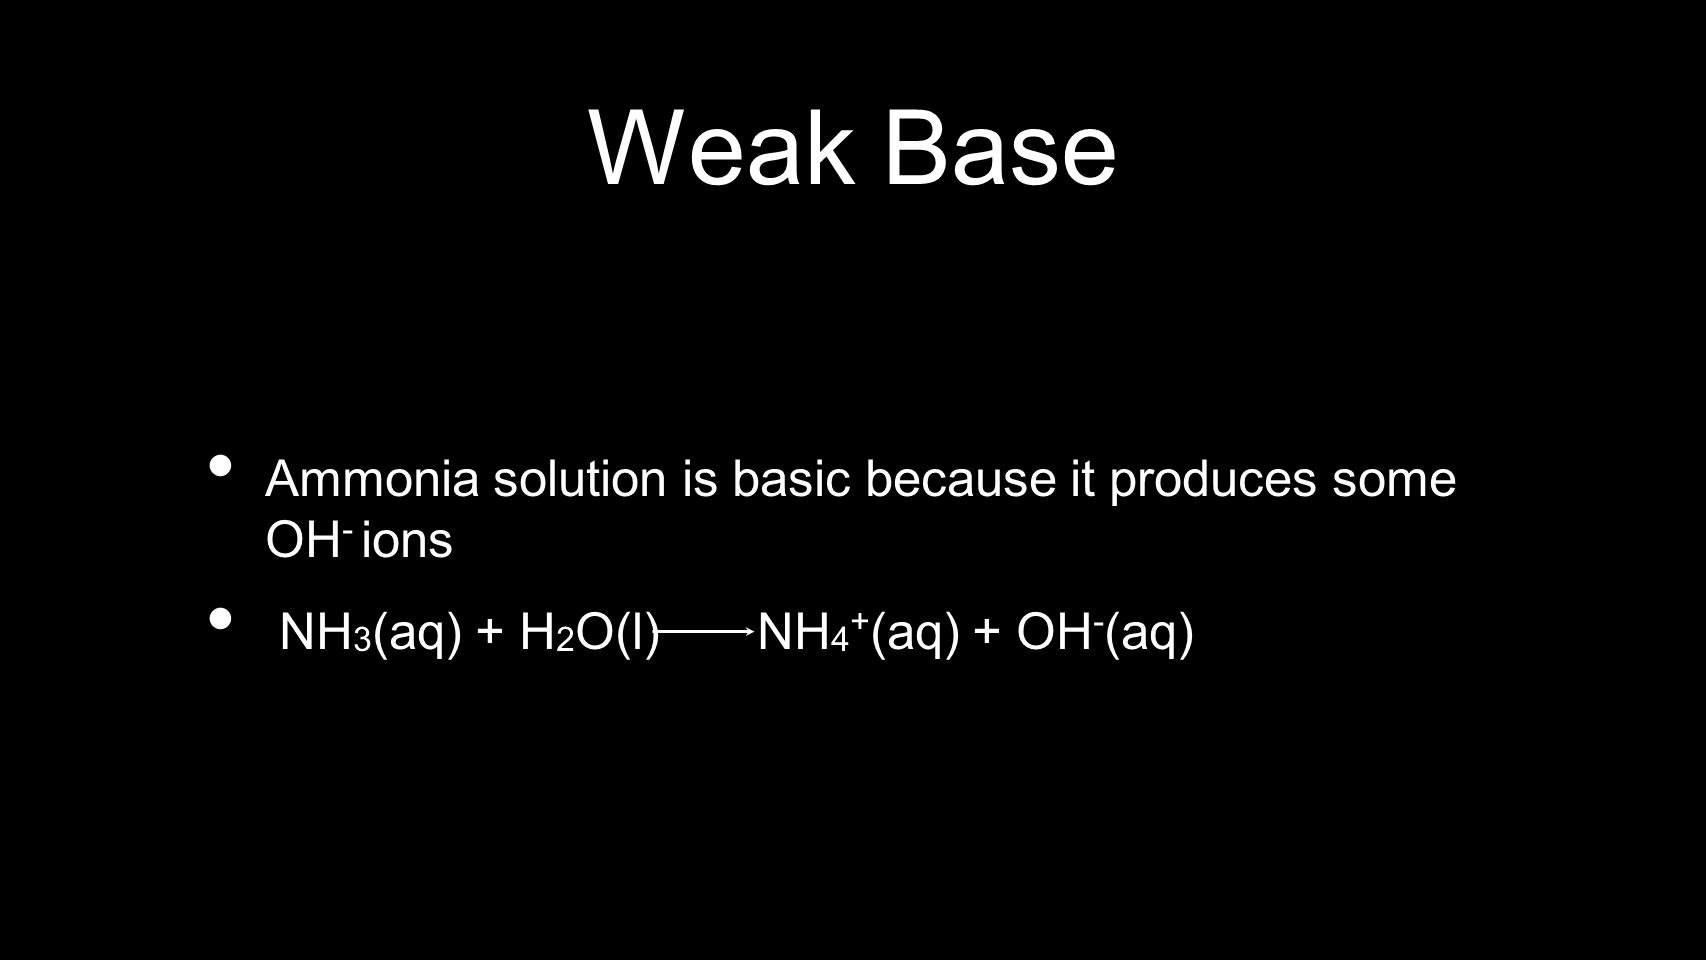 Weak Base Ammonia solution is basic because it produces some OH- ions